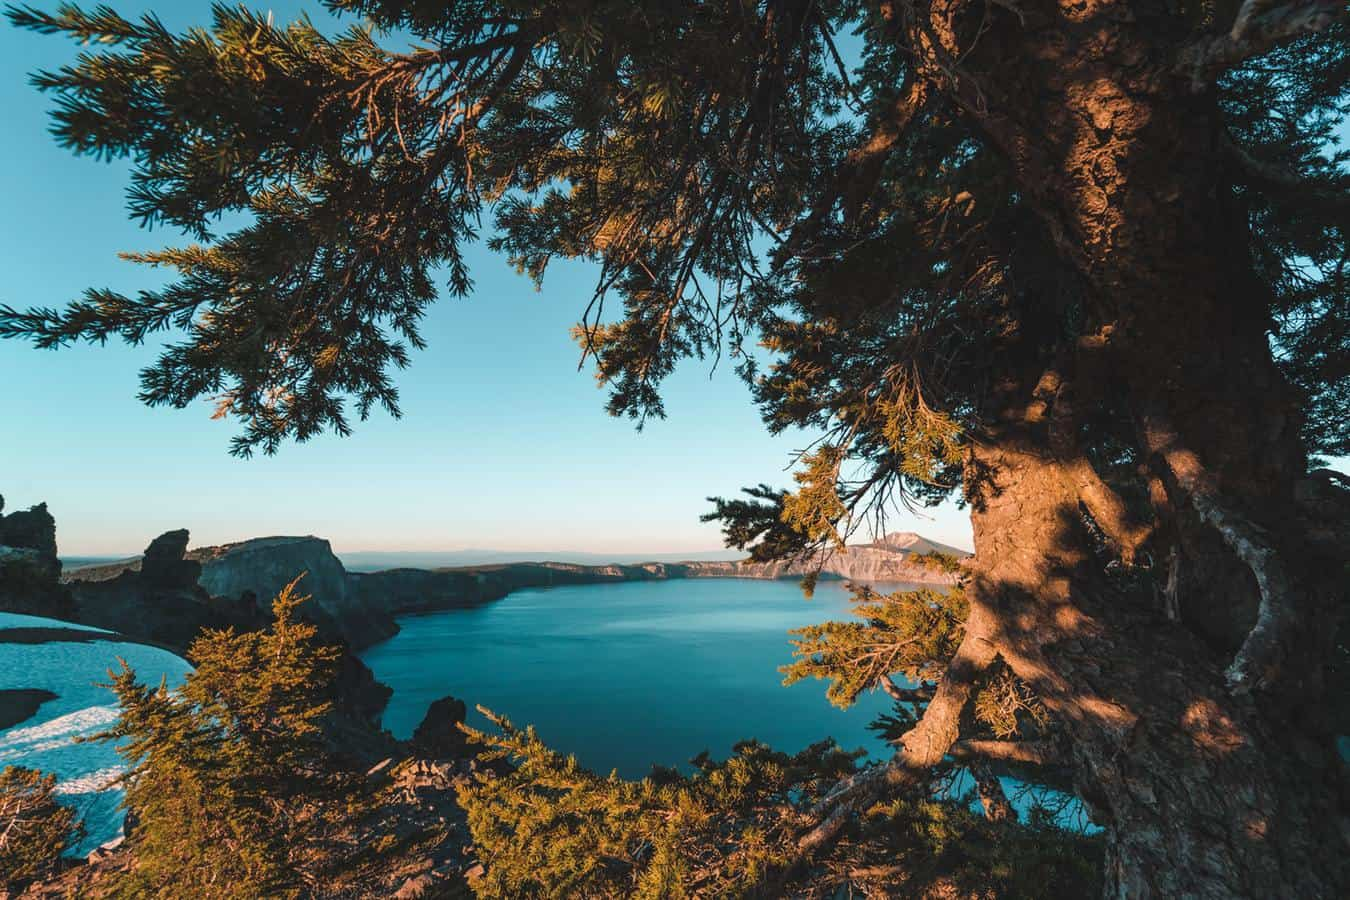 Tree overlooking lake with blue water in British Columbia.